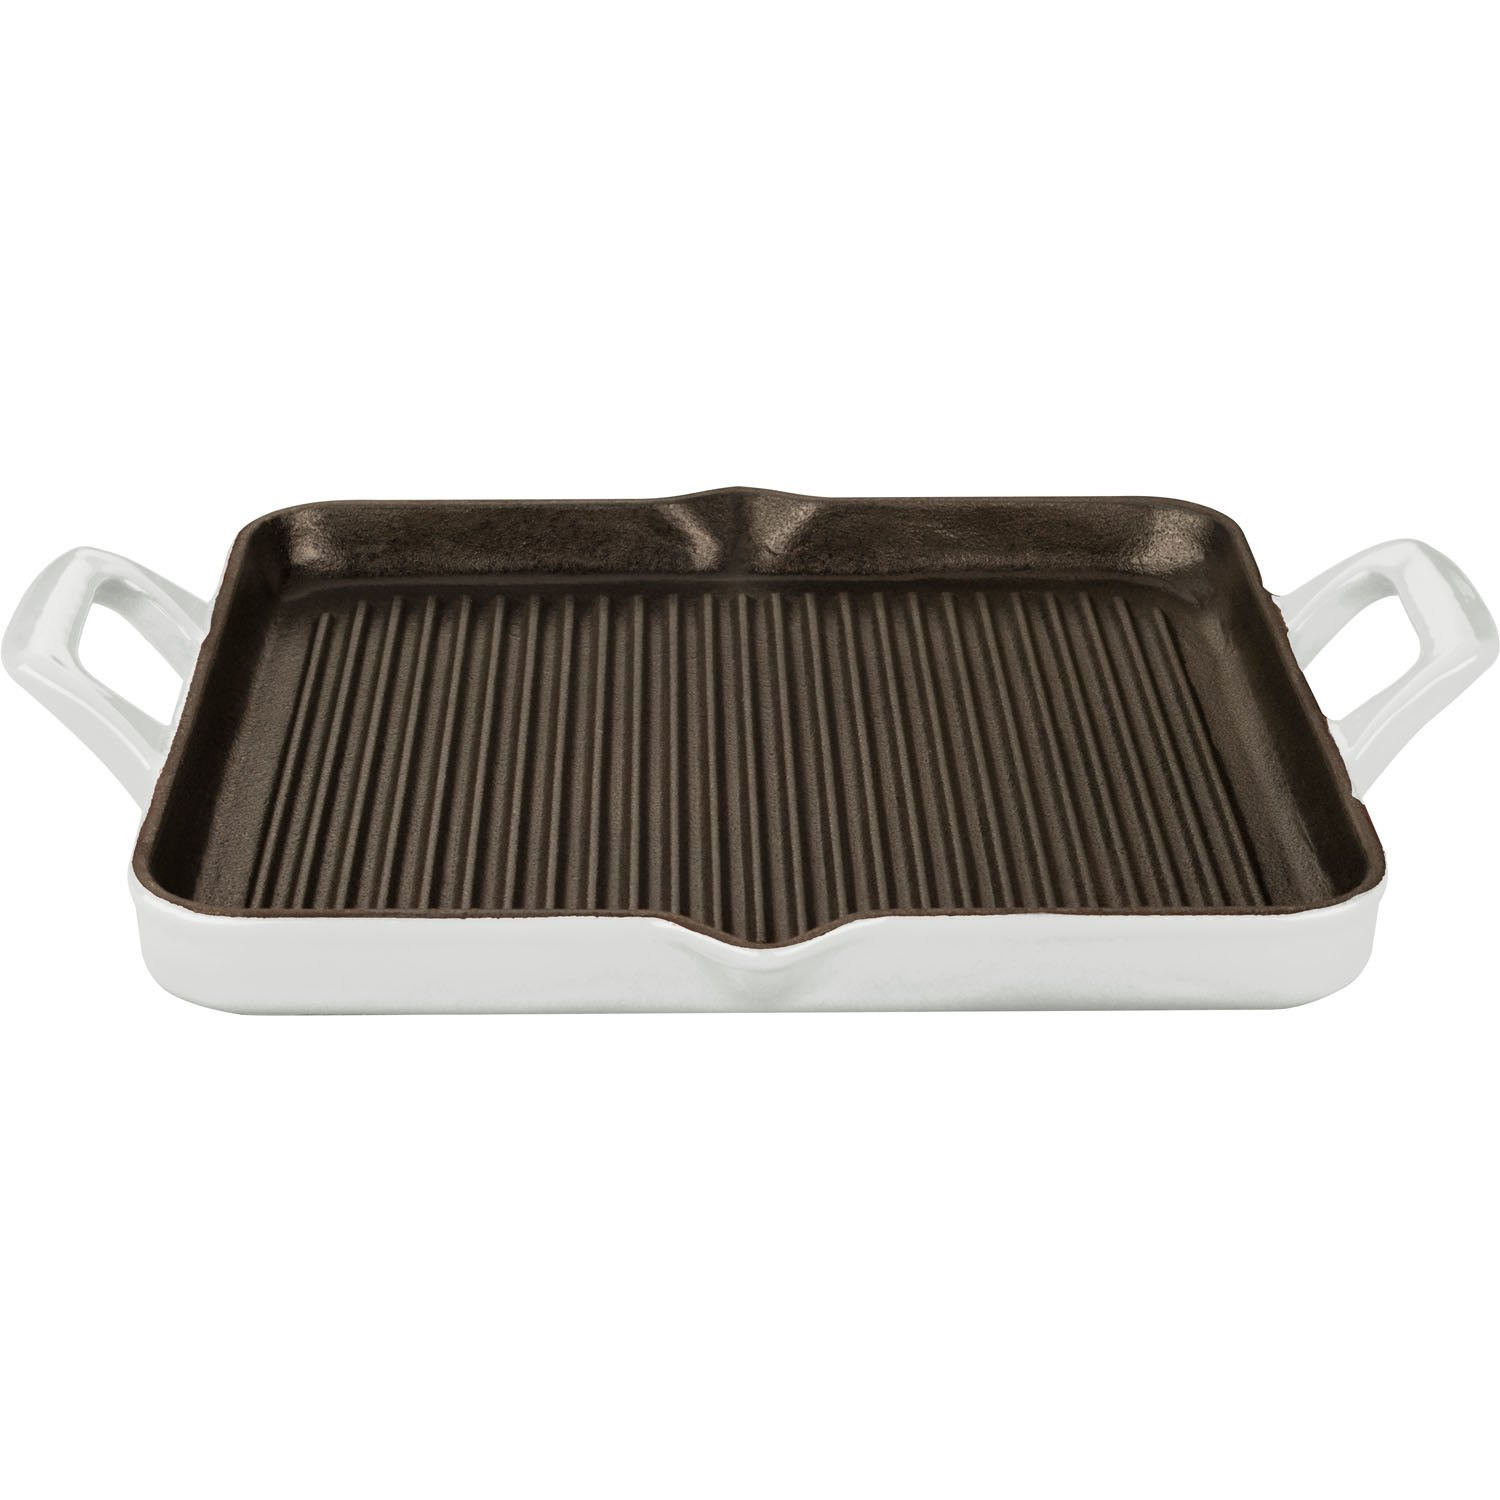 La Cuisine 1 Qt Rectangular Enameled Cast Iron Grill Pan, White